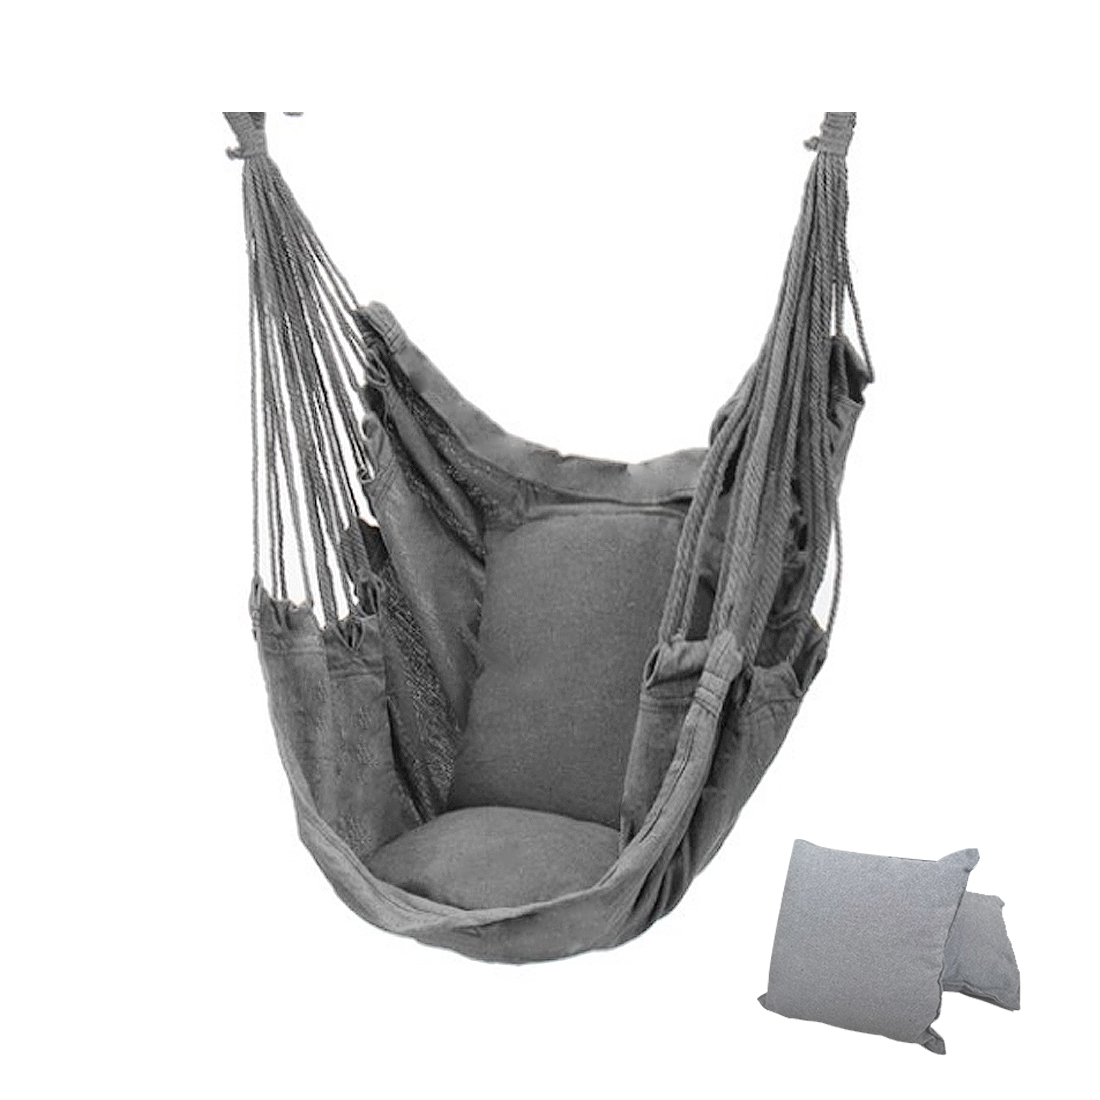 New Thicken Hammock Chair Hanging Swing Chair Outdoor Portable Relaxation Canvas Swing Travel Camping Lazy Chair wIth/no Pillow